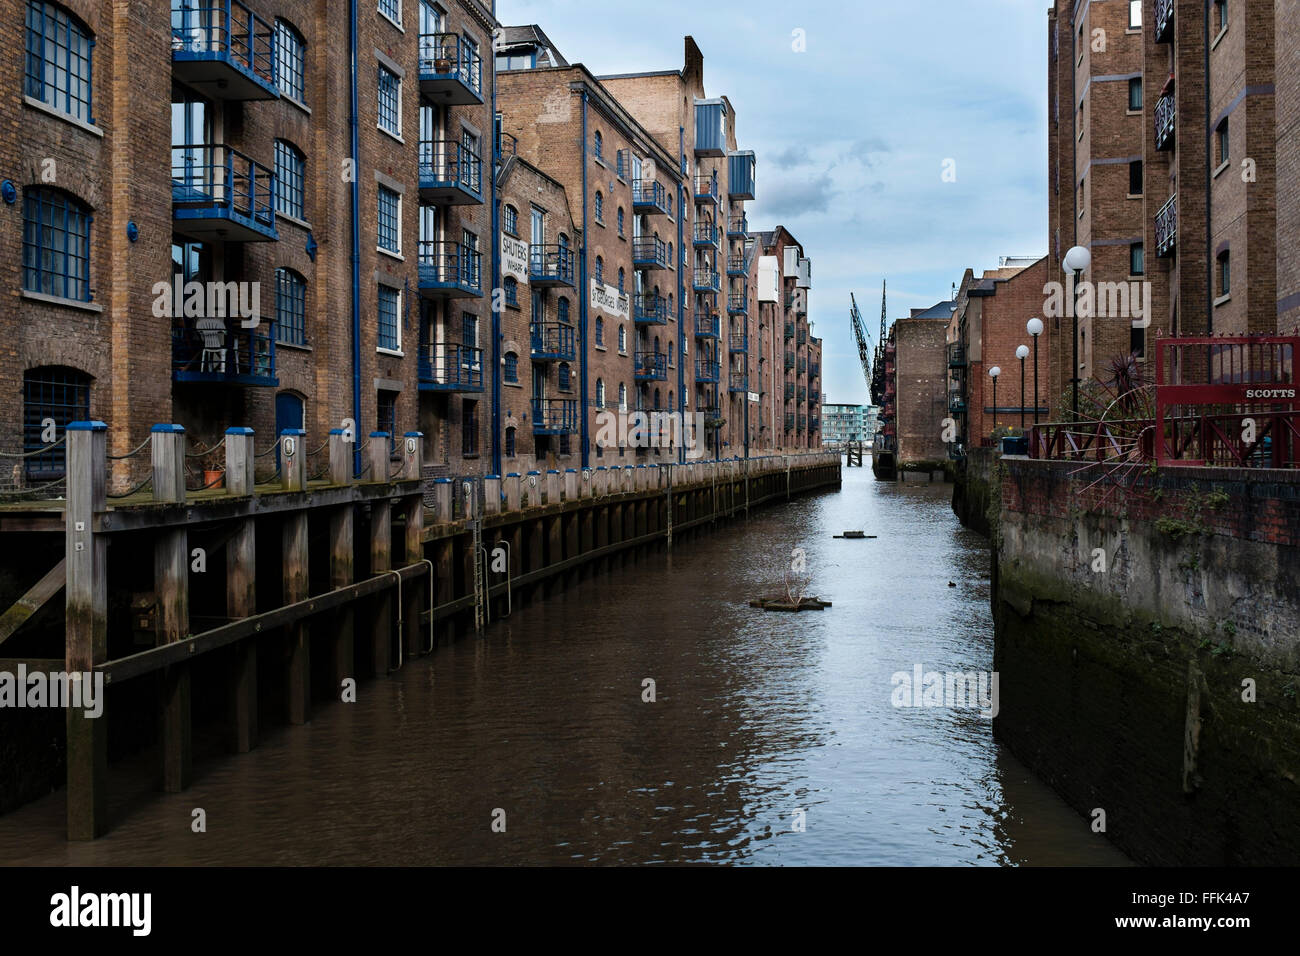 The ancient River Neckinger as it enters the River Thames between Shad Thames and the area previously known as Jacobs - Stock Image